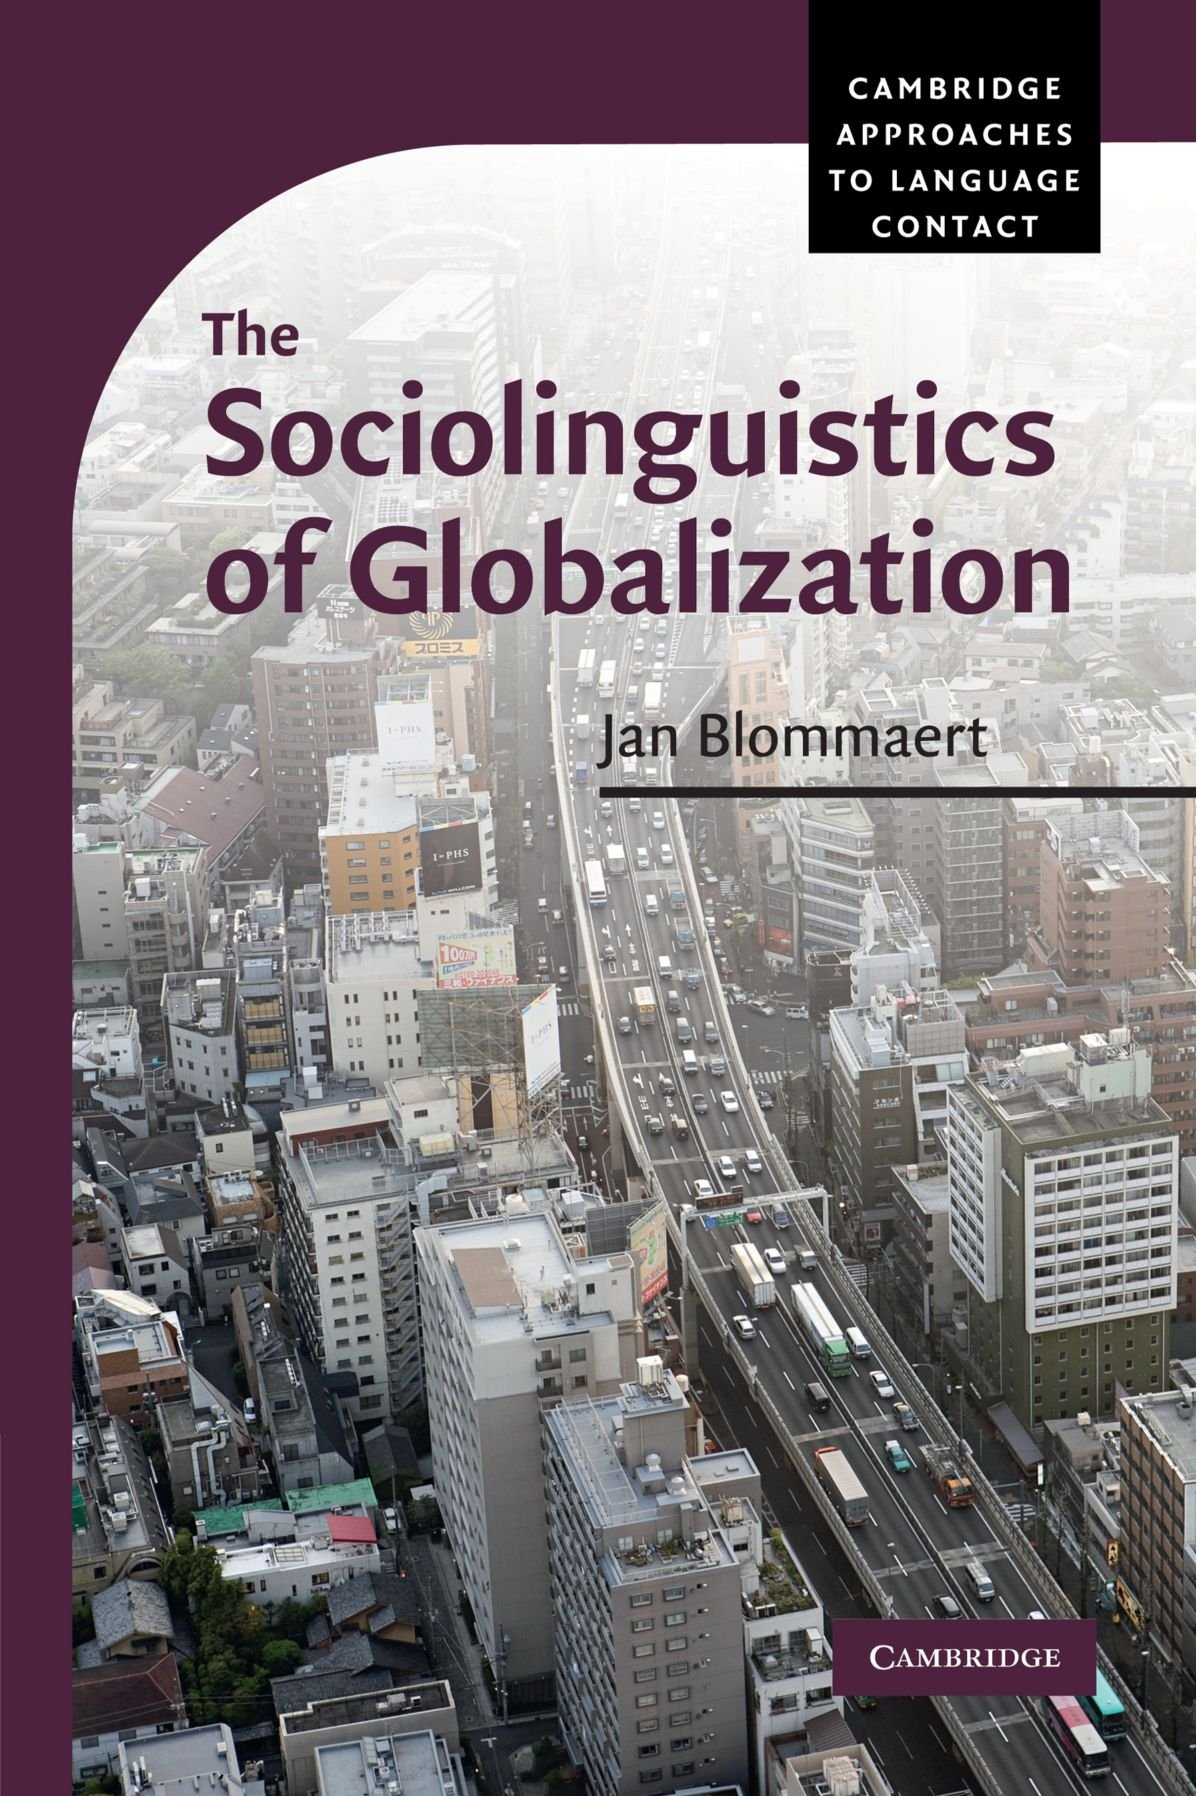 The Sociolinguistics of Globalization (Cambridge Approaches to Language Contact) by Brand: Cambridge University Press